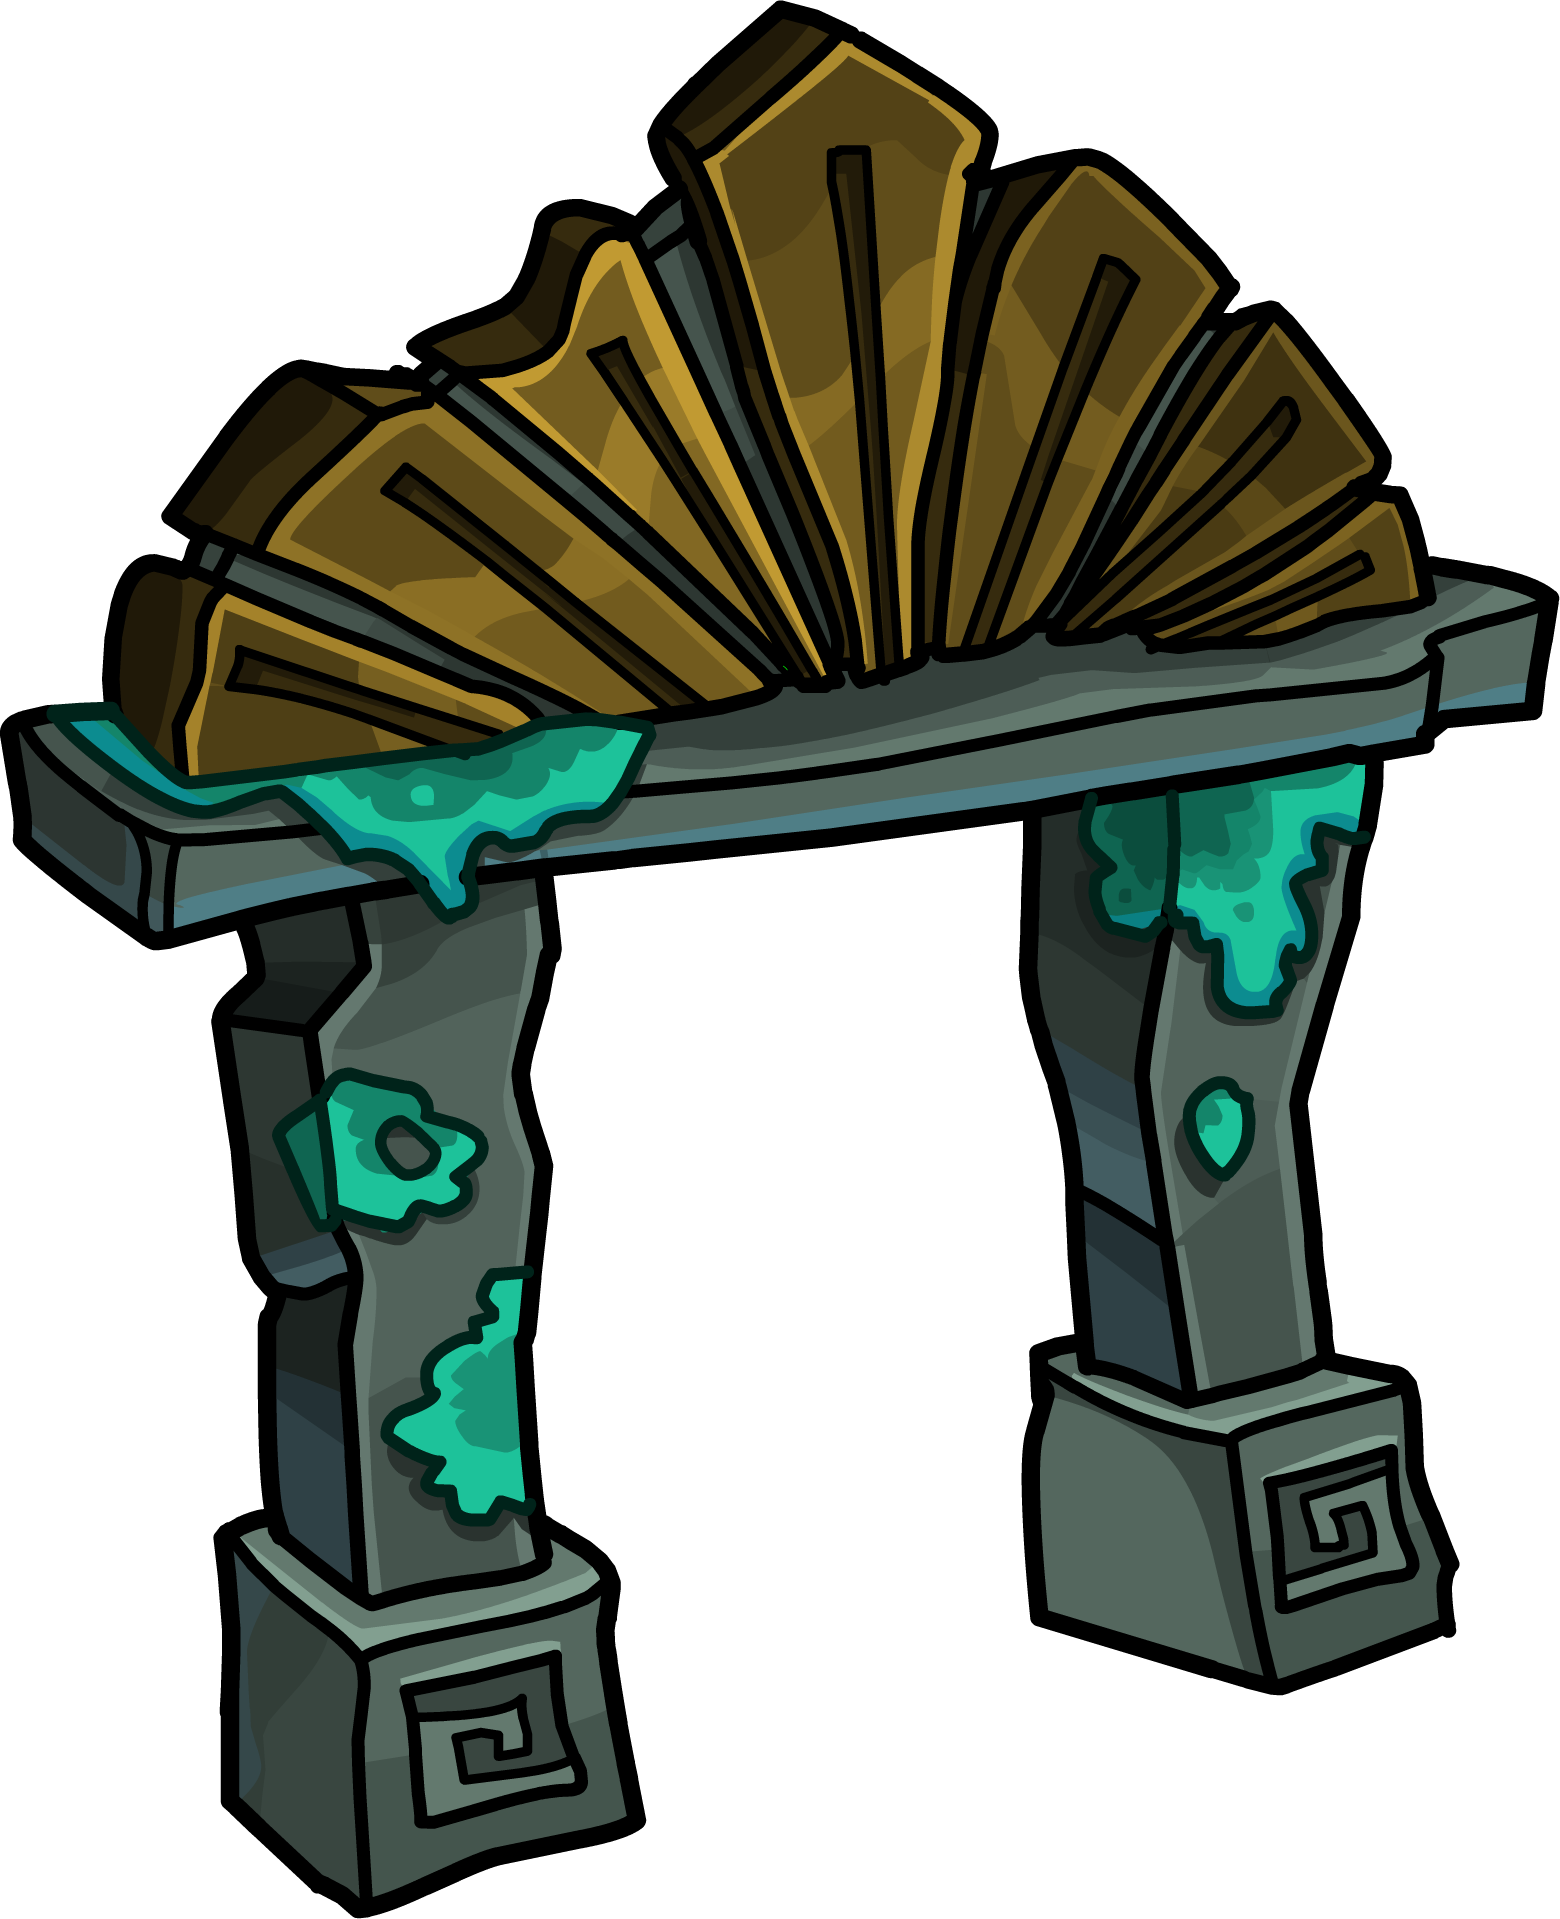 Ancient archway clipart clipart library Ancient Archway | Club Penguin Wiki | FANDOM powered by Wikia clipart library